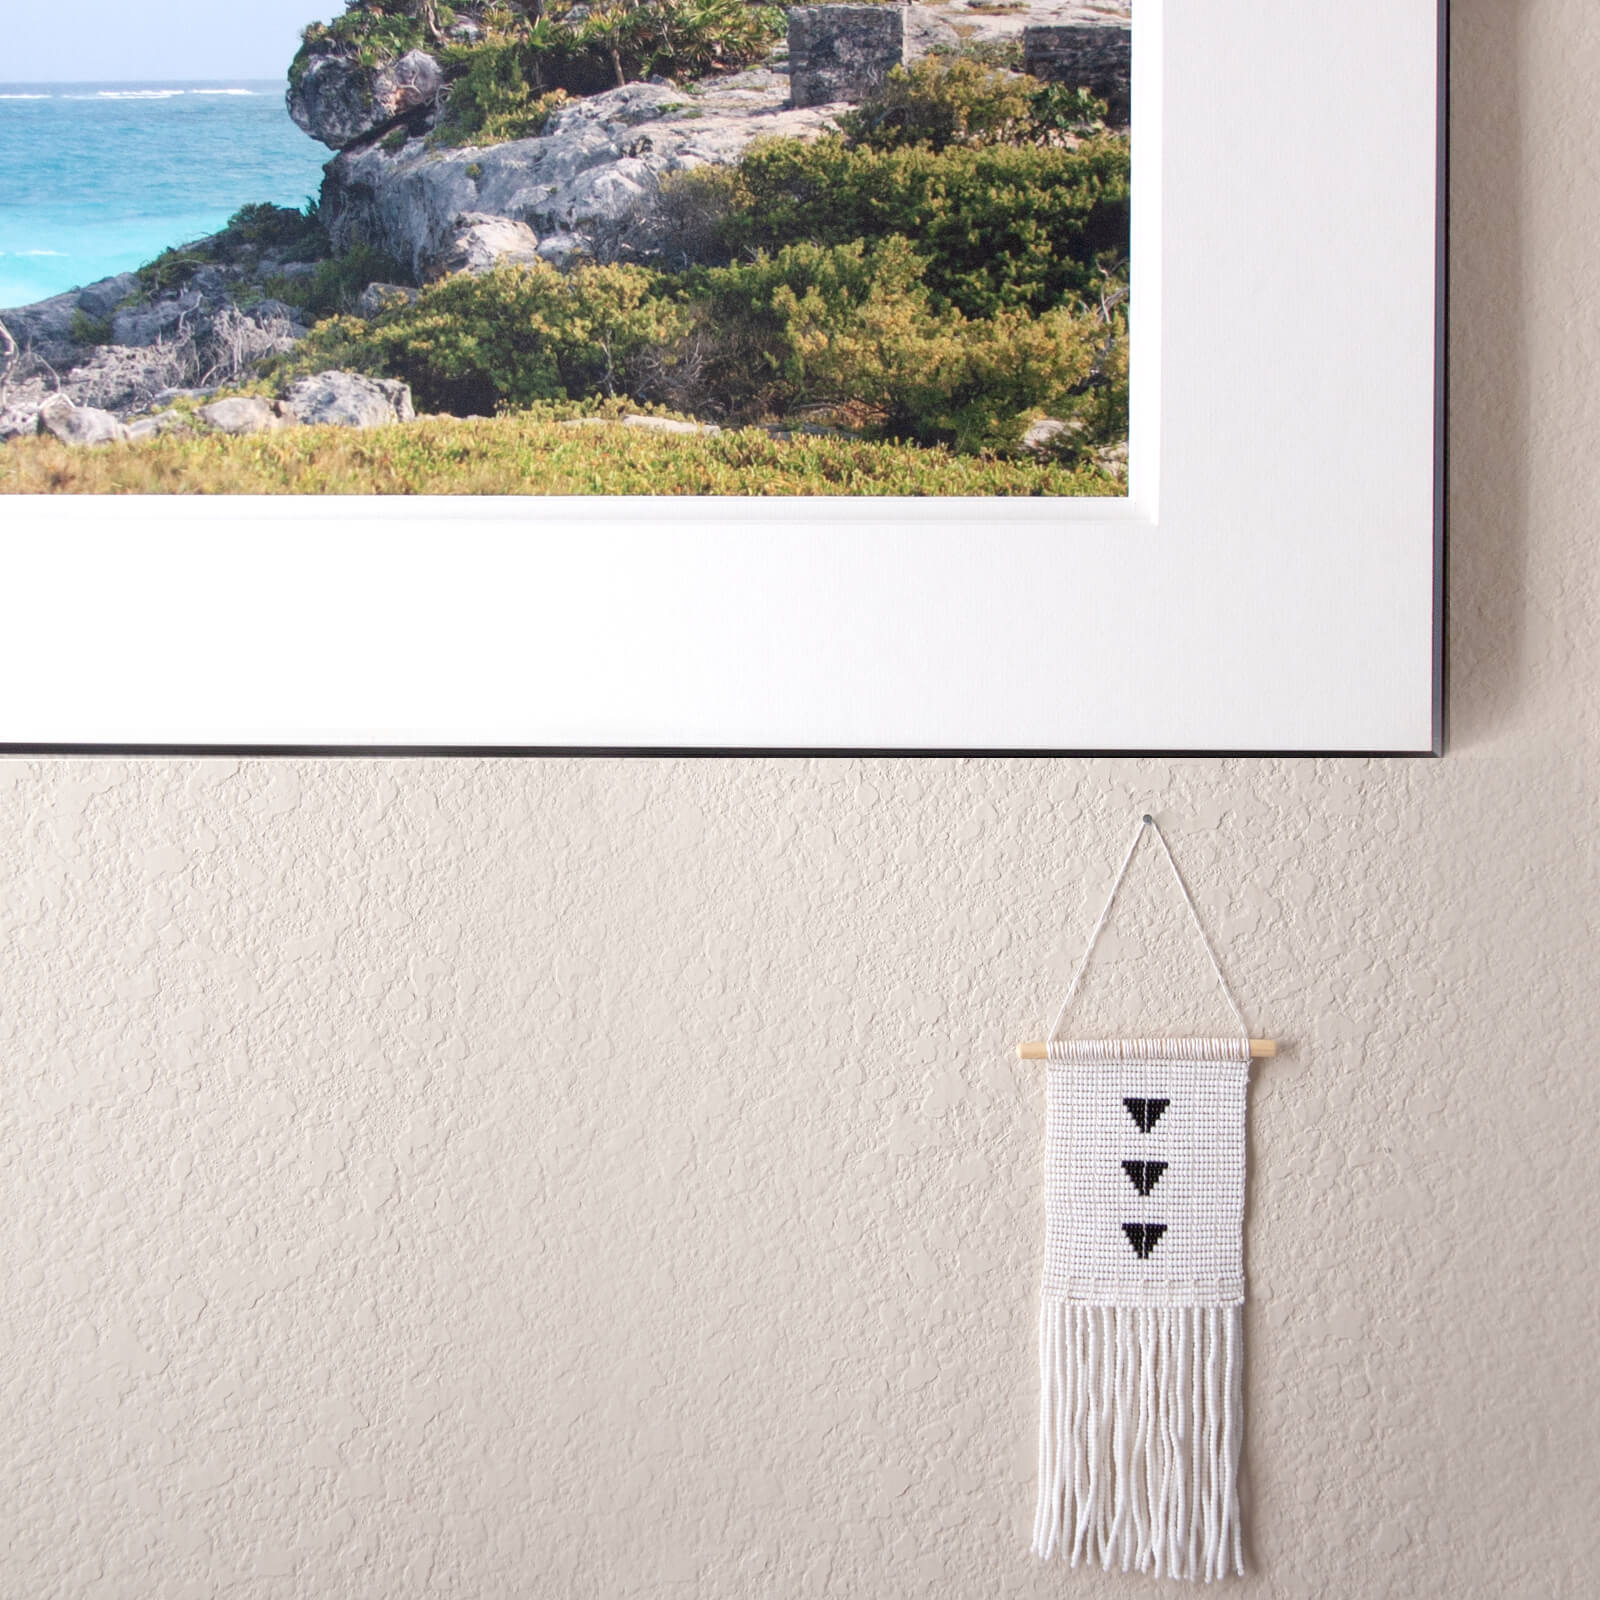 Little white wall hanging with tiny black triangles made of beads